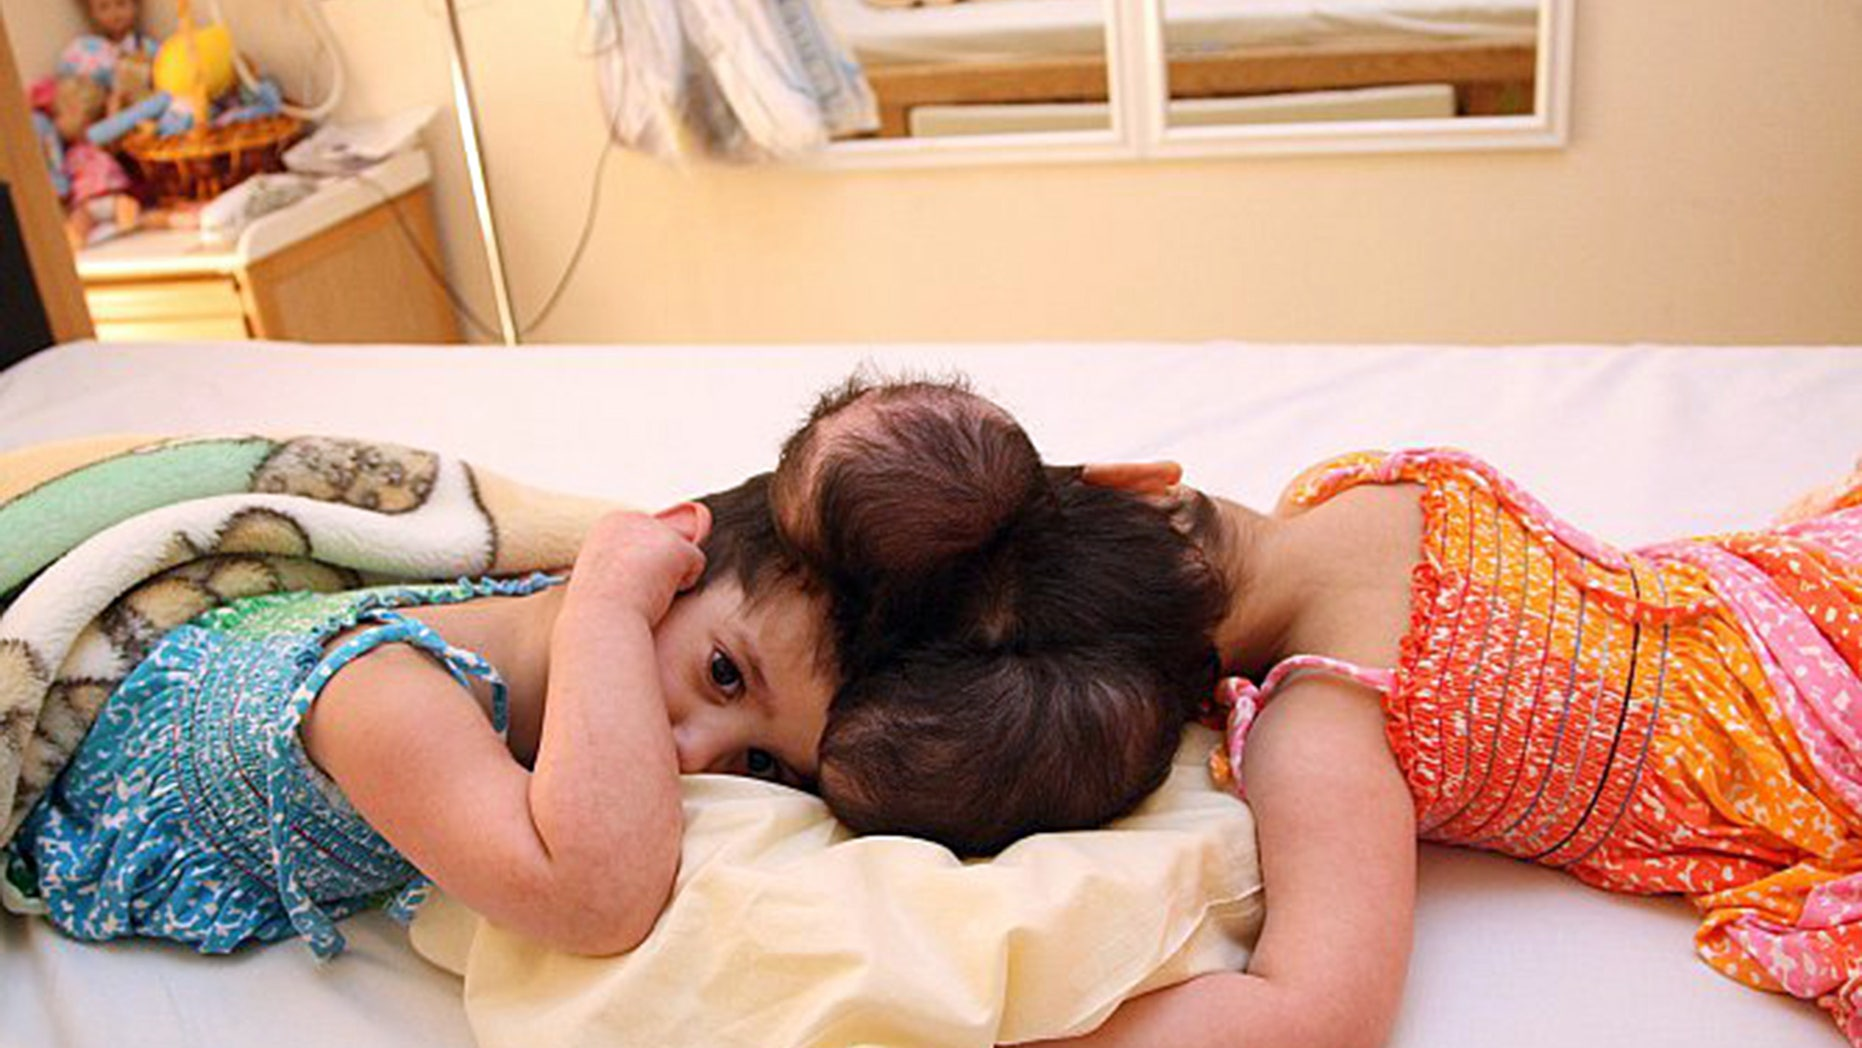 Tuqa and Yakeen are said to be doing well after a 10-hour surgery to separate them.